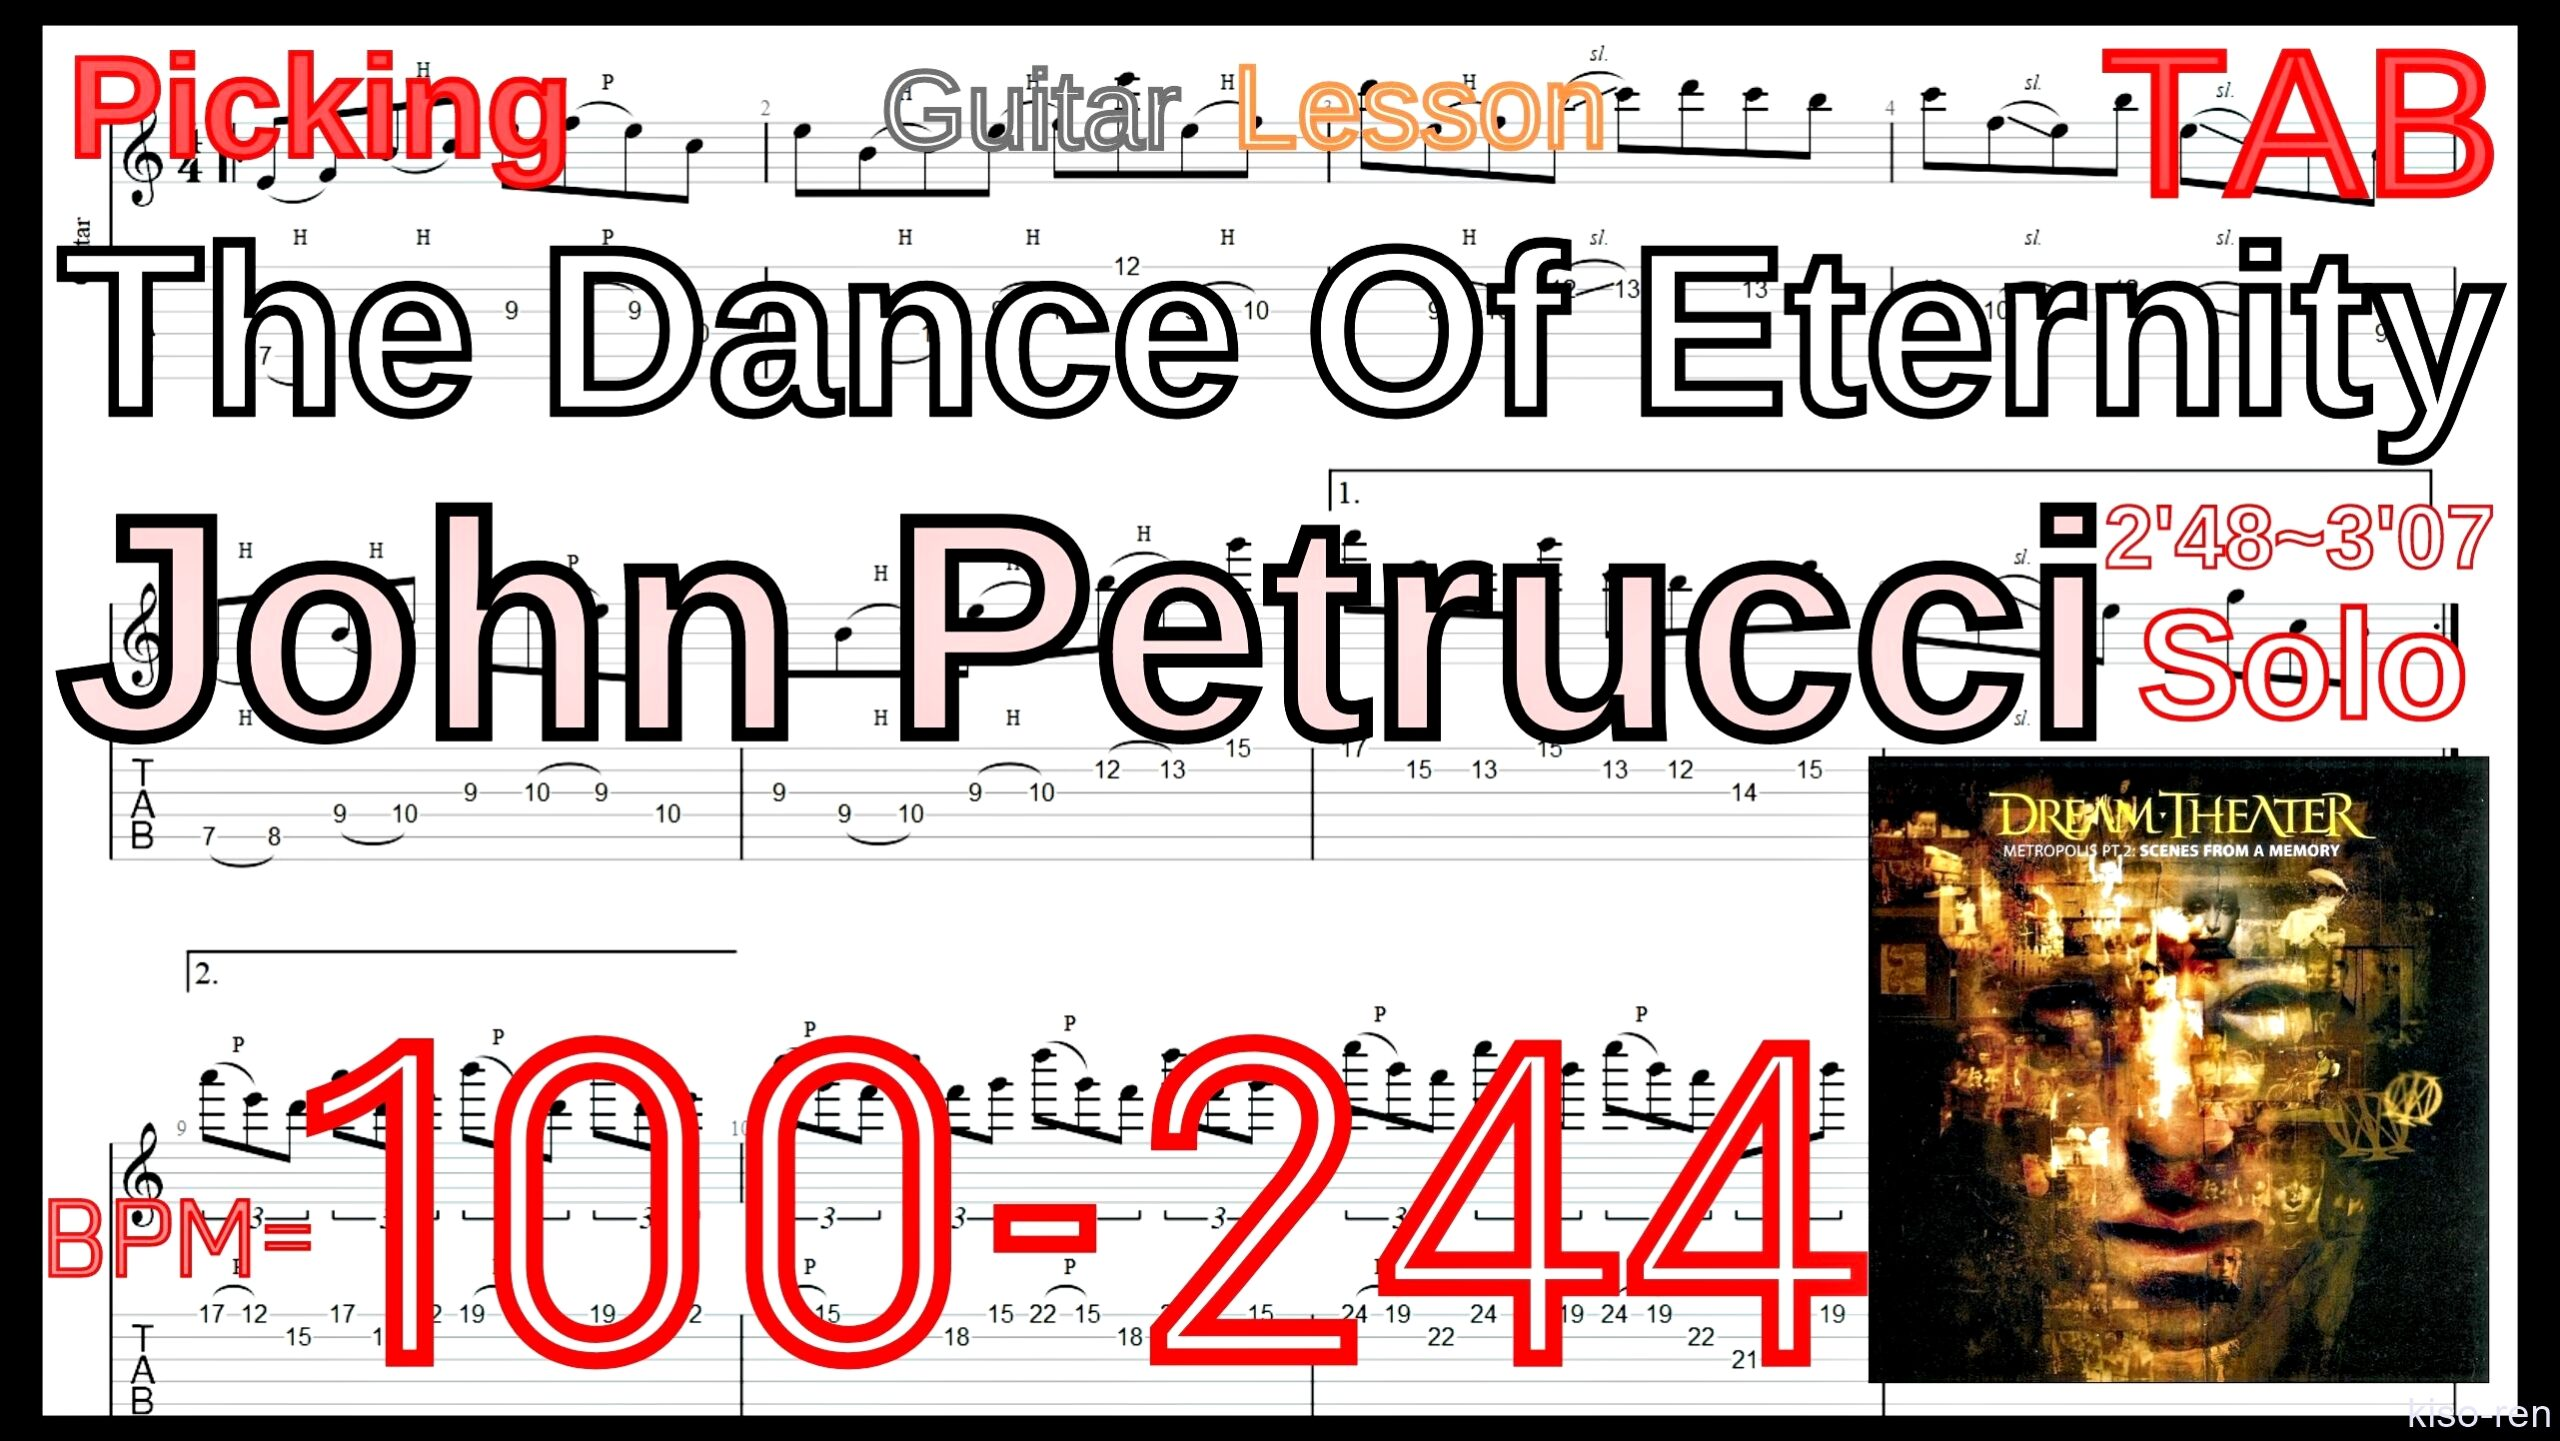 【TAB】The Dance Of Eternity Solo / Dream Theater ドリームシアター ギターソロ 練習 John Petrucci Lesson【Picking】